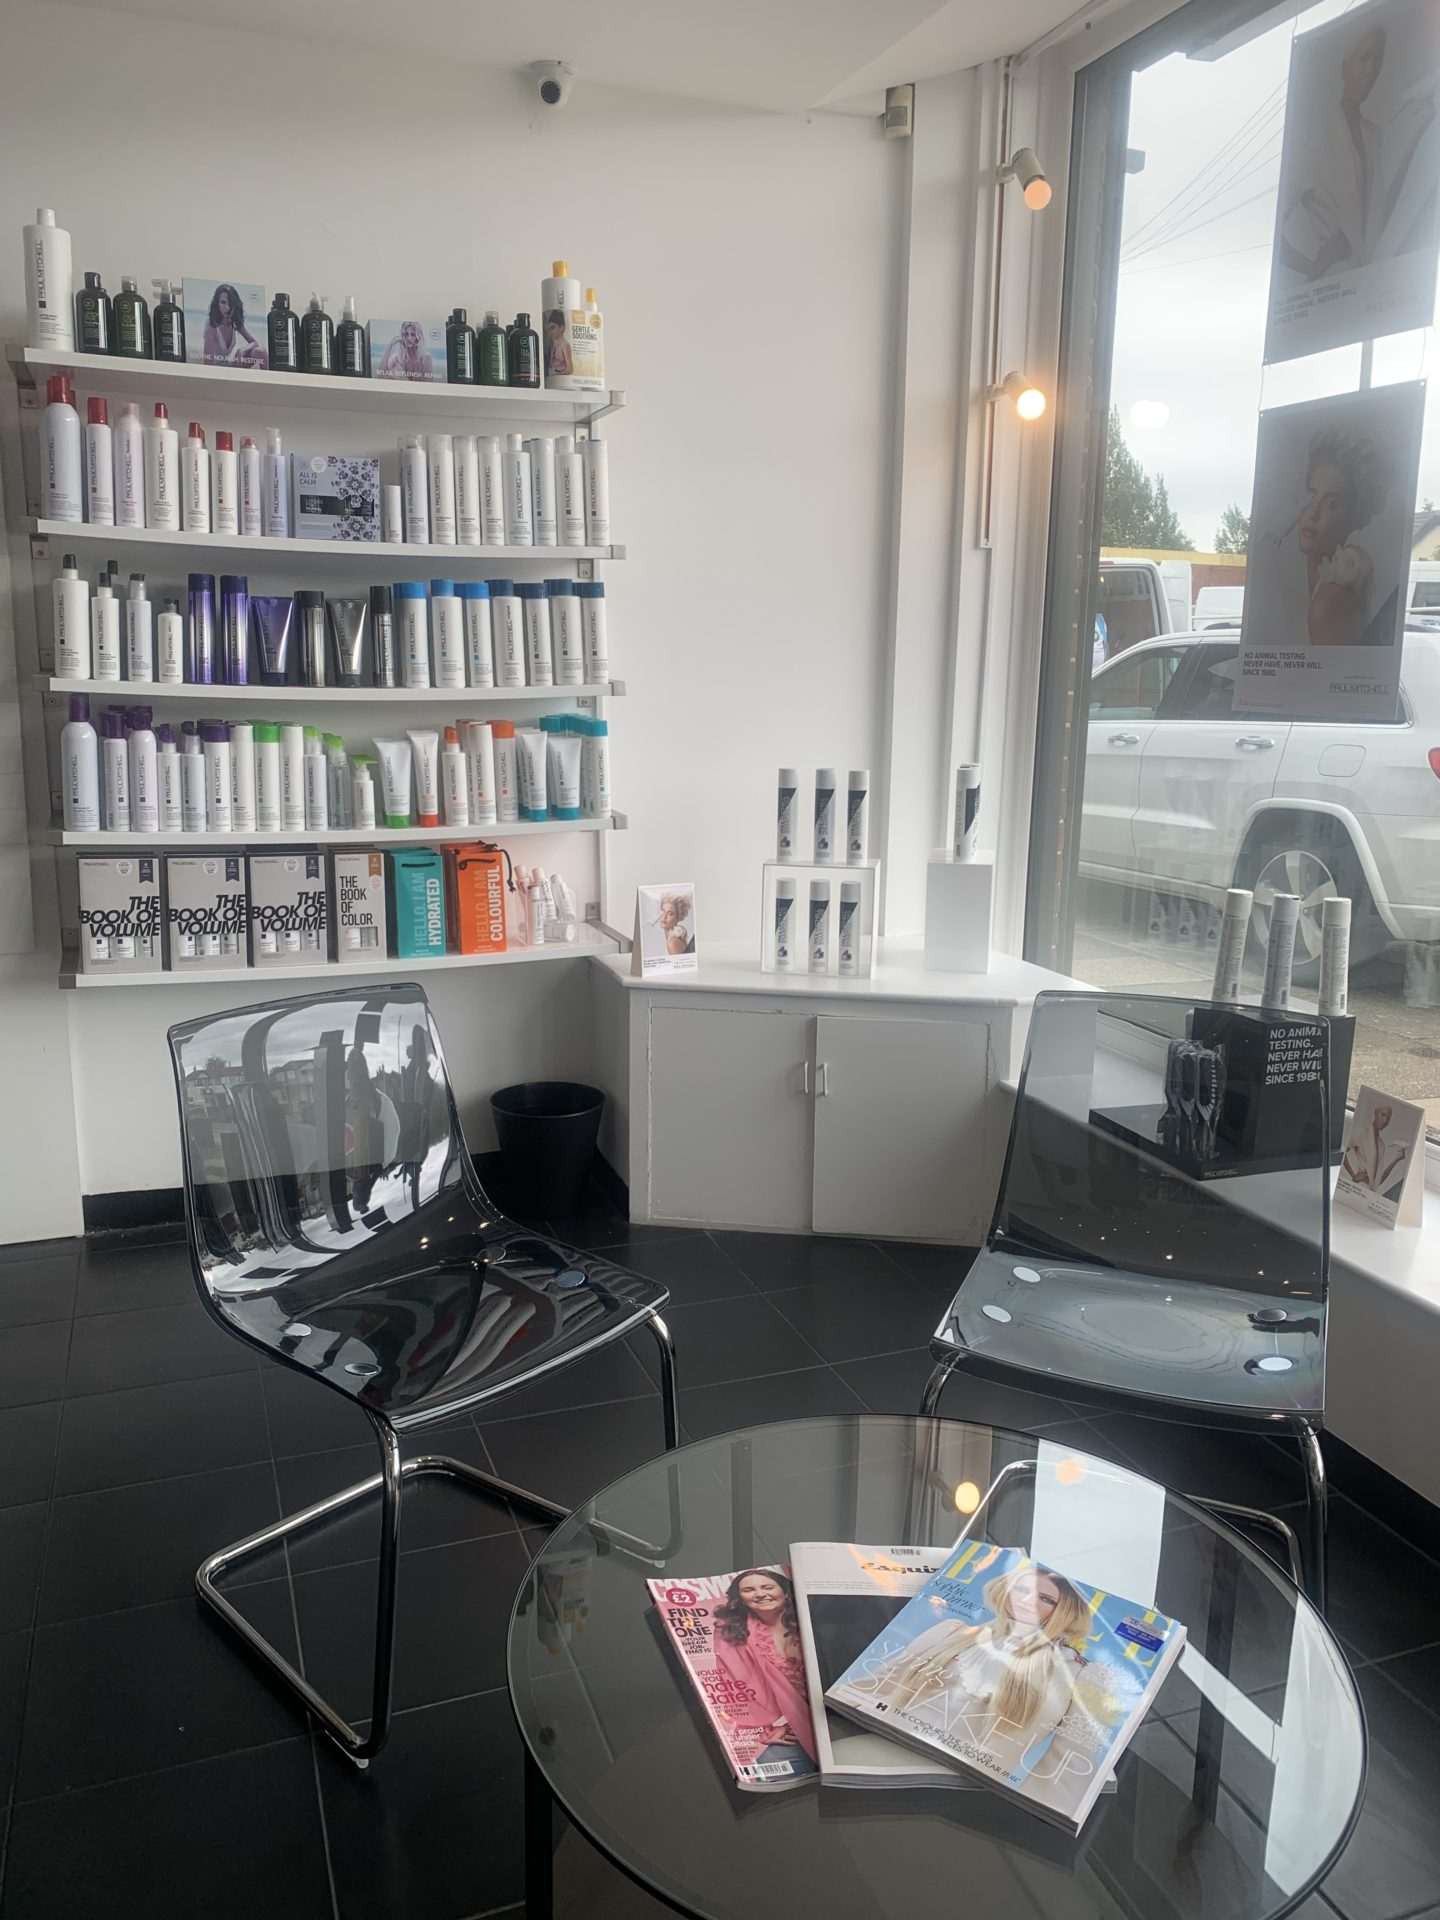 VISIT THE TOP HAIR SALON IN LIVERPOOL AT ESENTIA HAIR AND BEAUTY